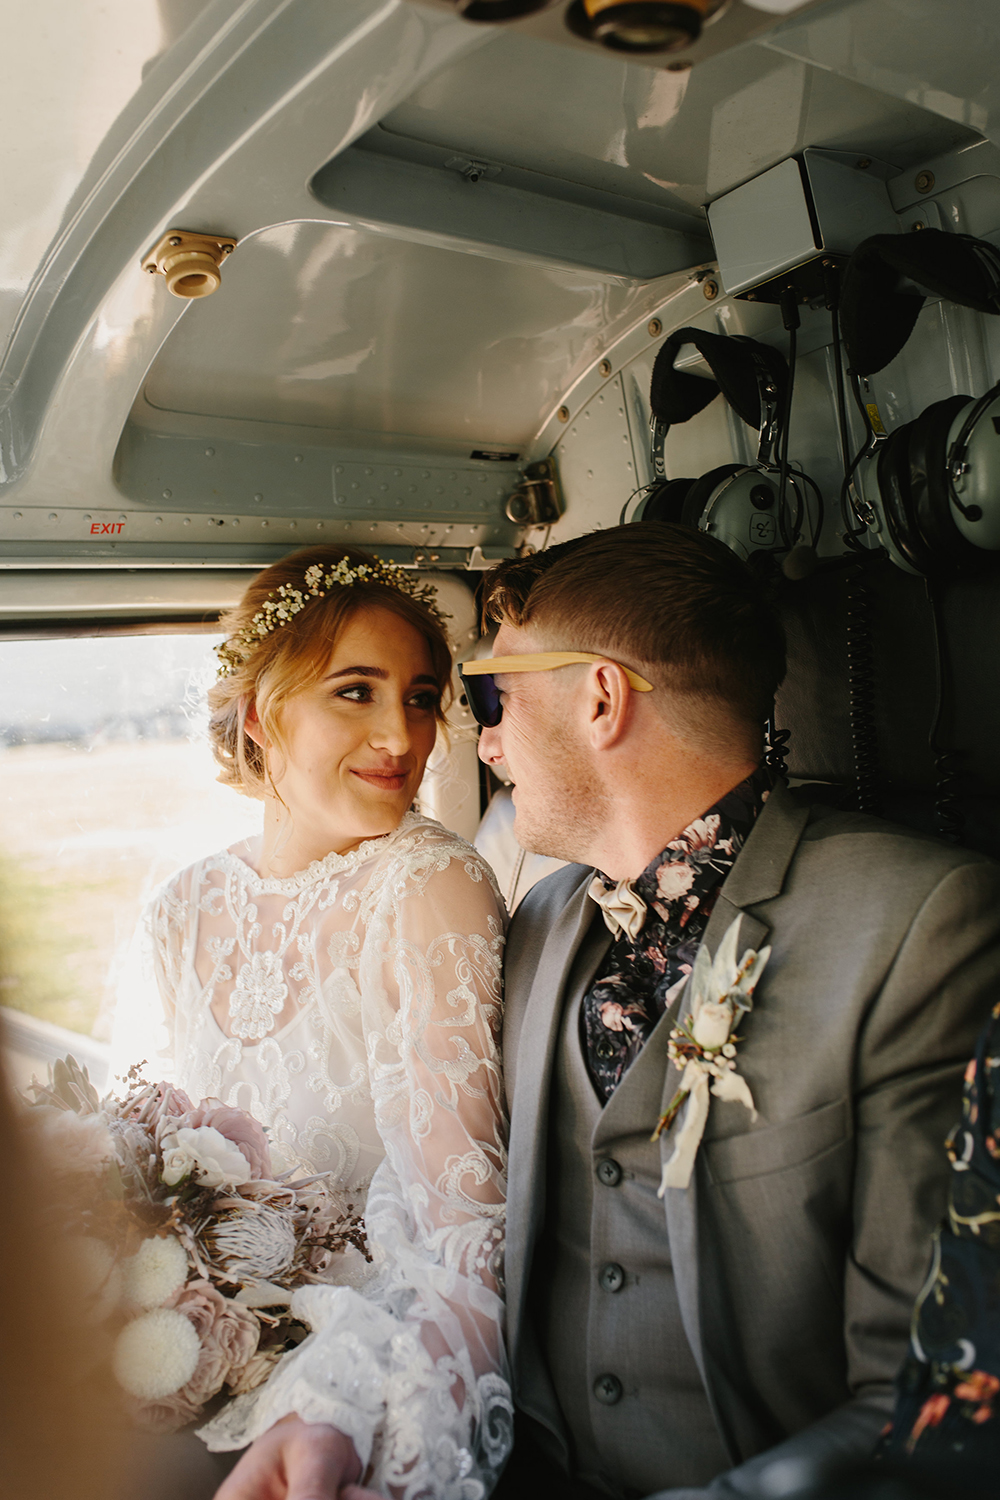 Categories: Weddings-Real Wedding: Jenna & Anthony - Photography by Dawn Thomson